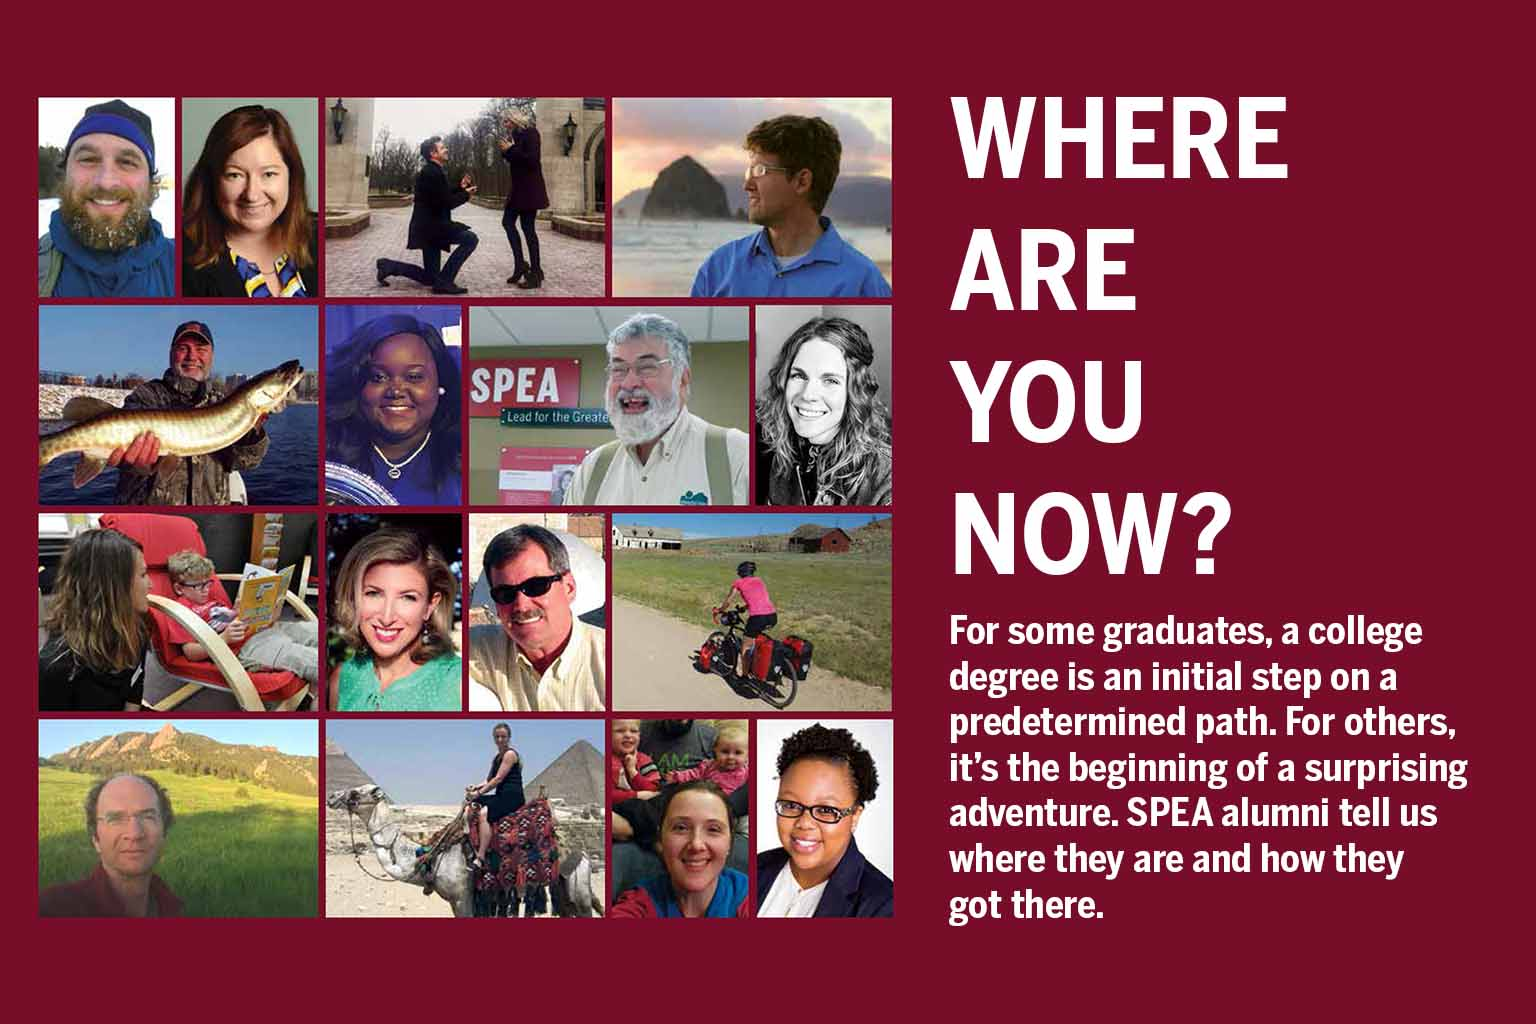 Where are you now? For some graduates, a college degree is an initial step on a predetermined path. For others, it's the beginning of a surprising adventure. SPEA alumni tell us where they are and how they got there.